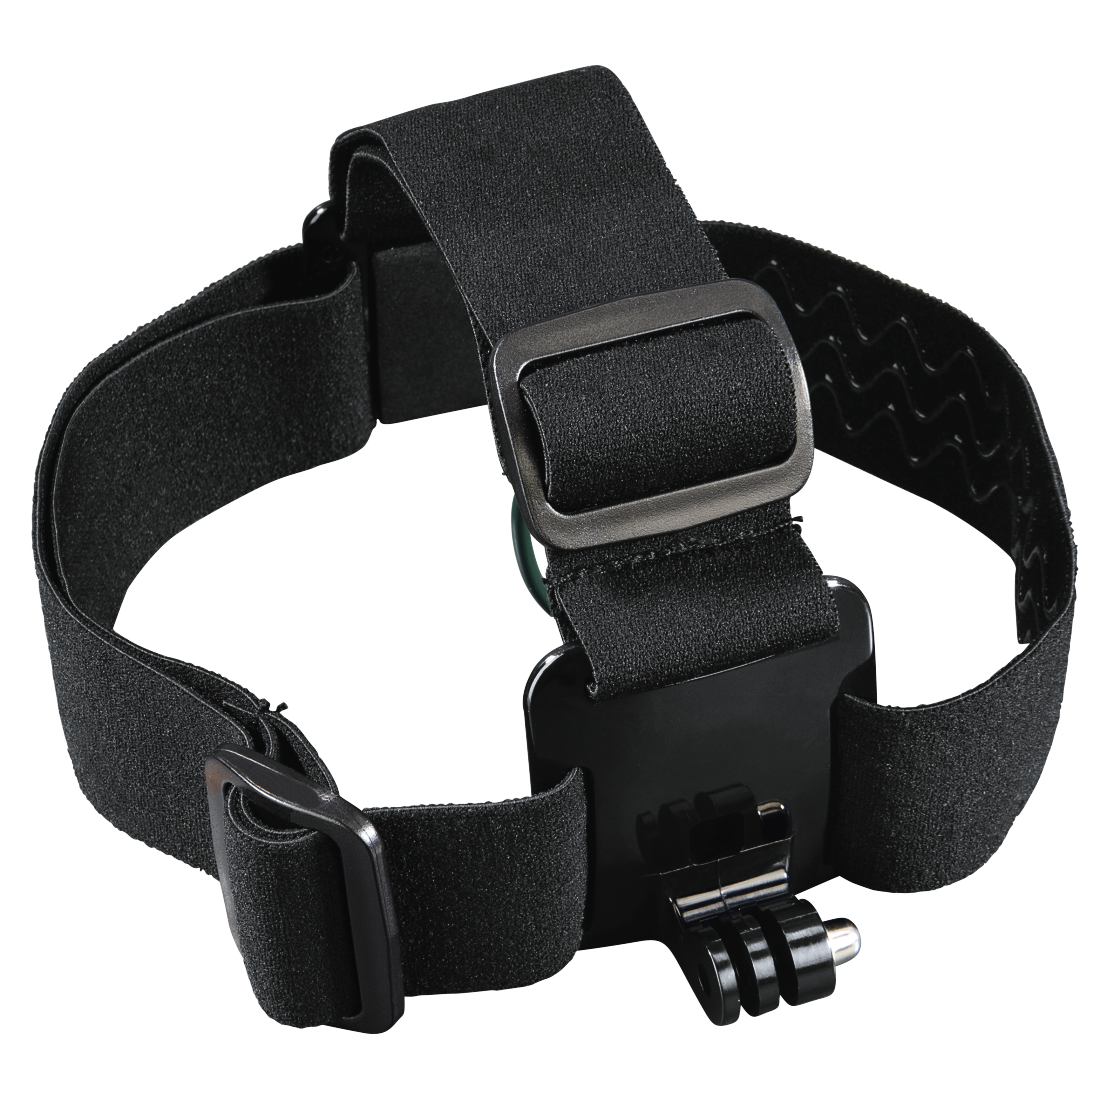 abx High-Res Image - Hama, Head Strap Mount for GoPro